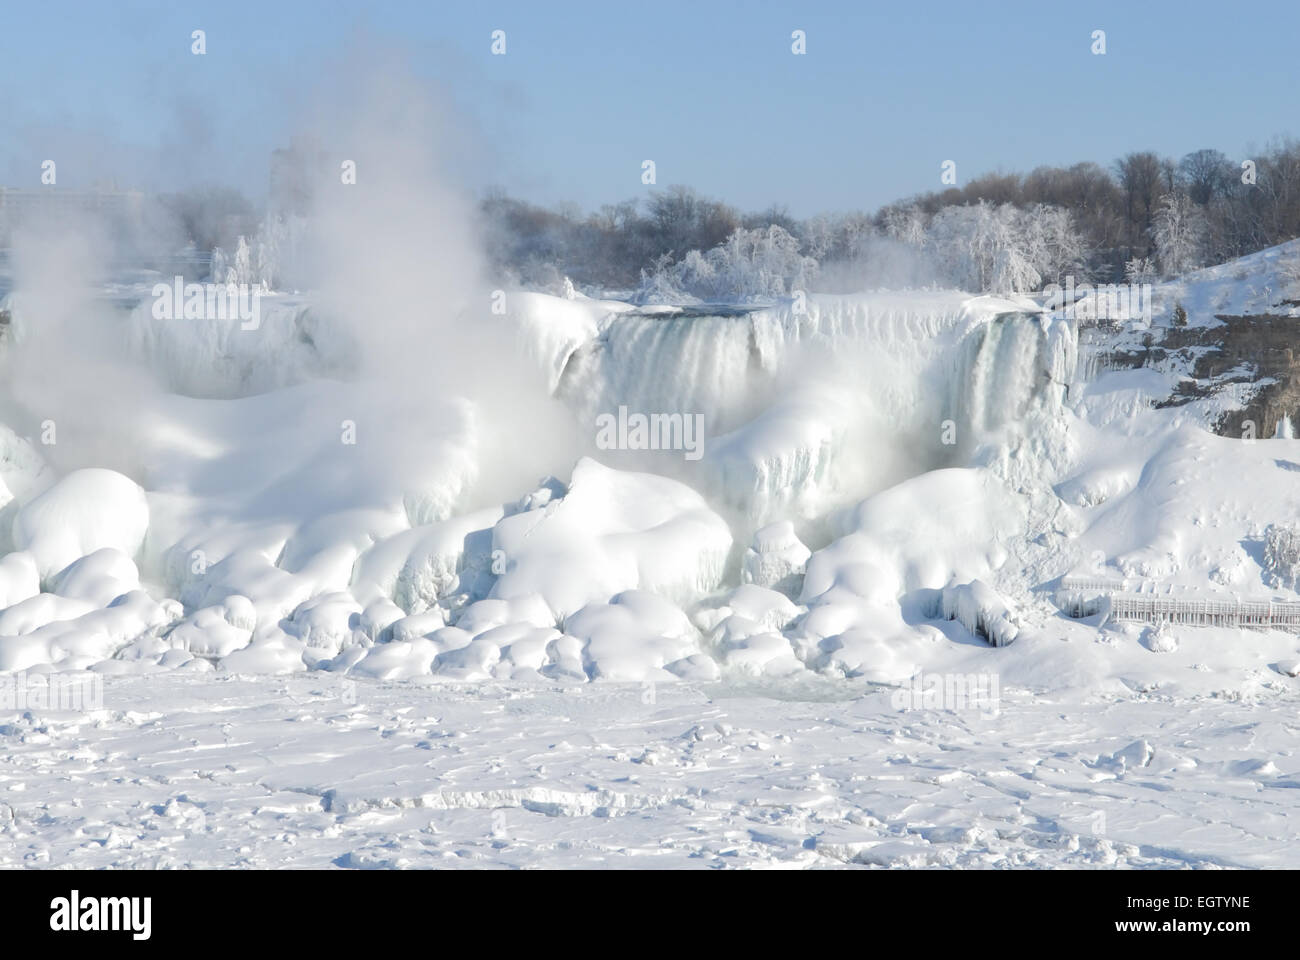 The American Side Of Niagara Falls Frozen Over During One Of